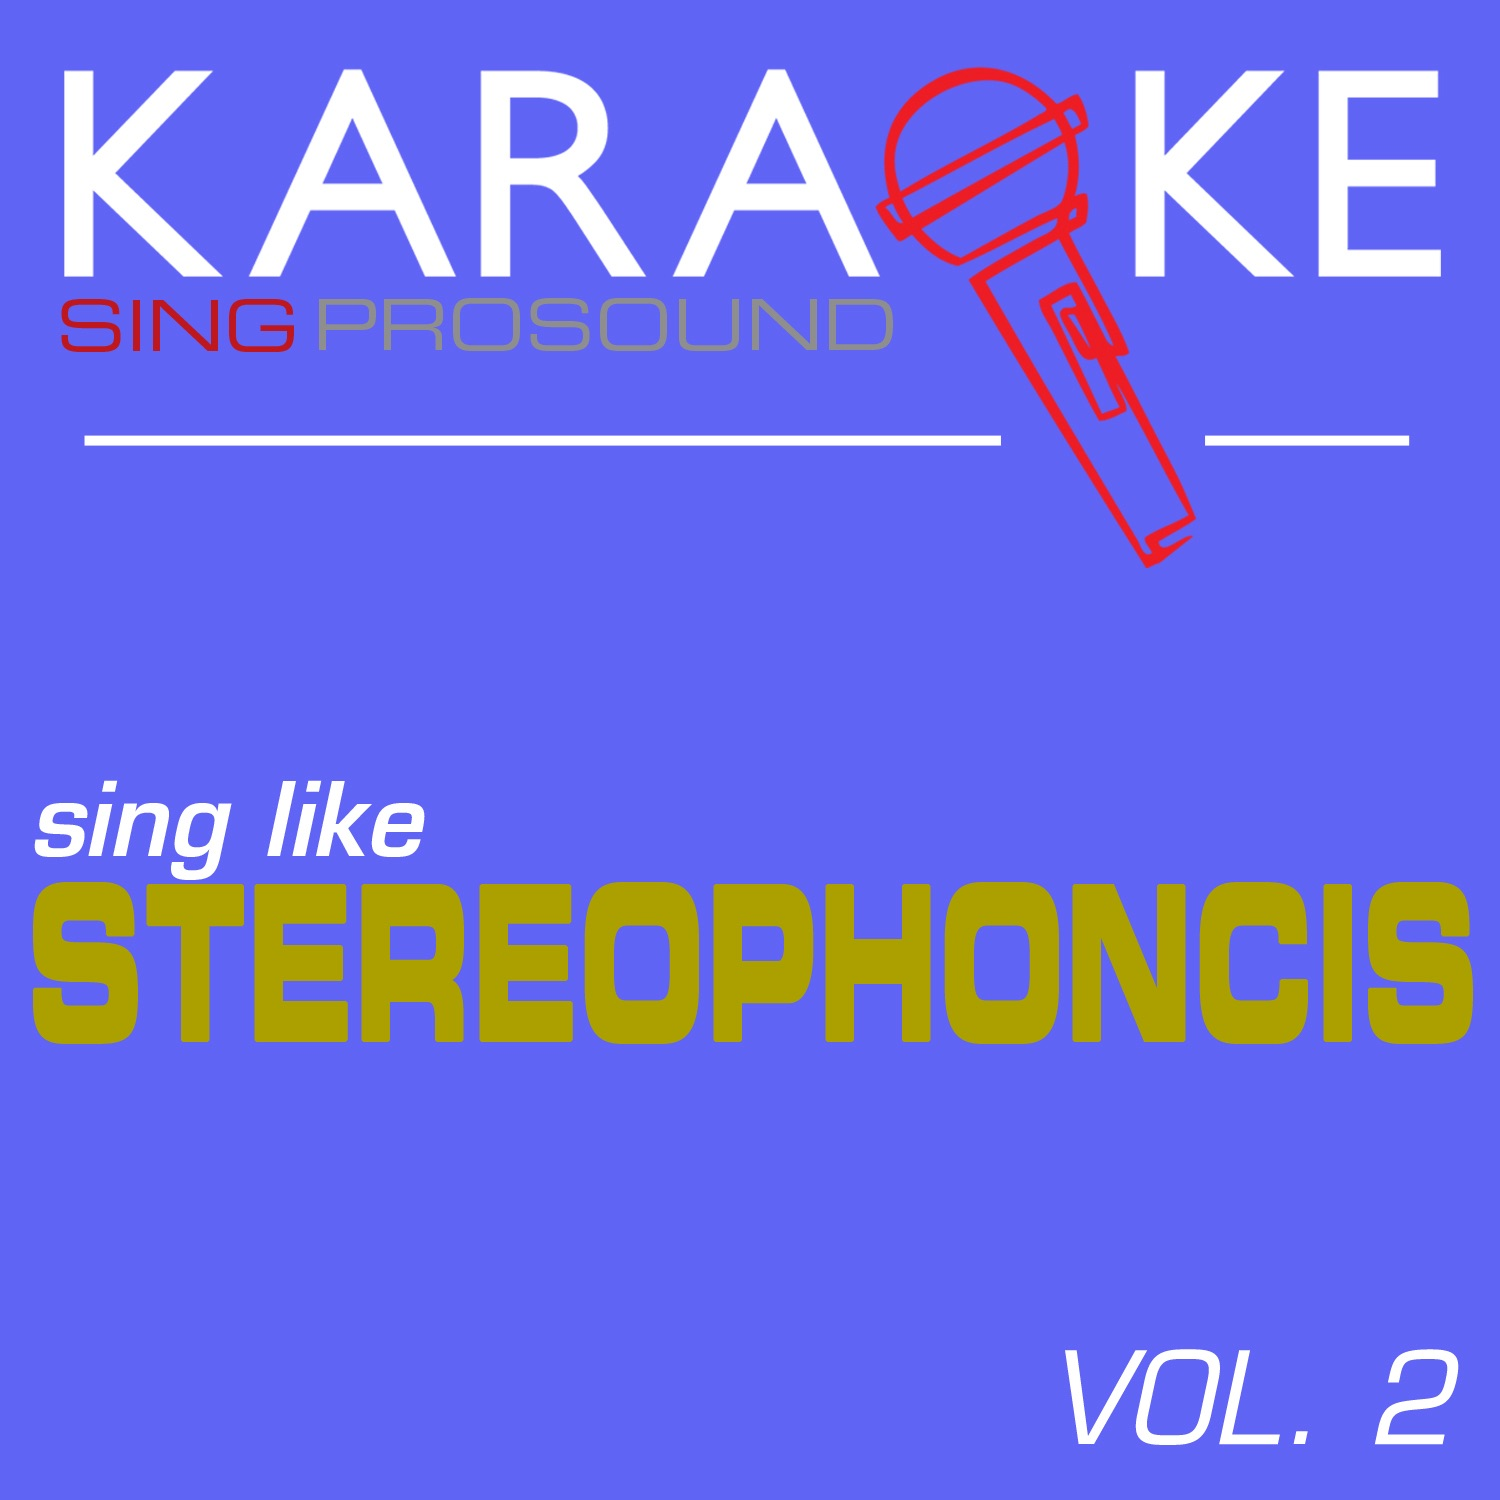 Karaoke in the Style of Stereophonics, Vol. 2